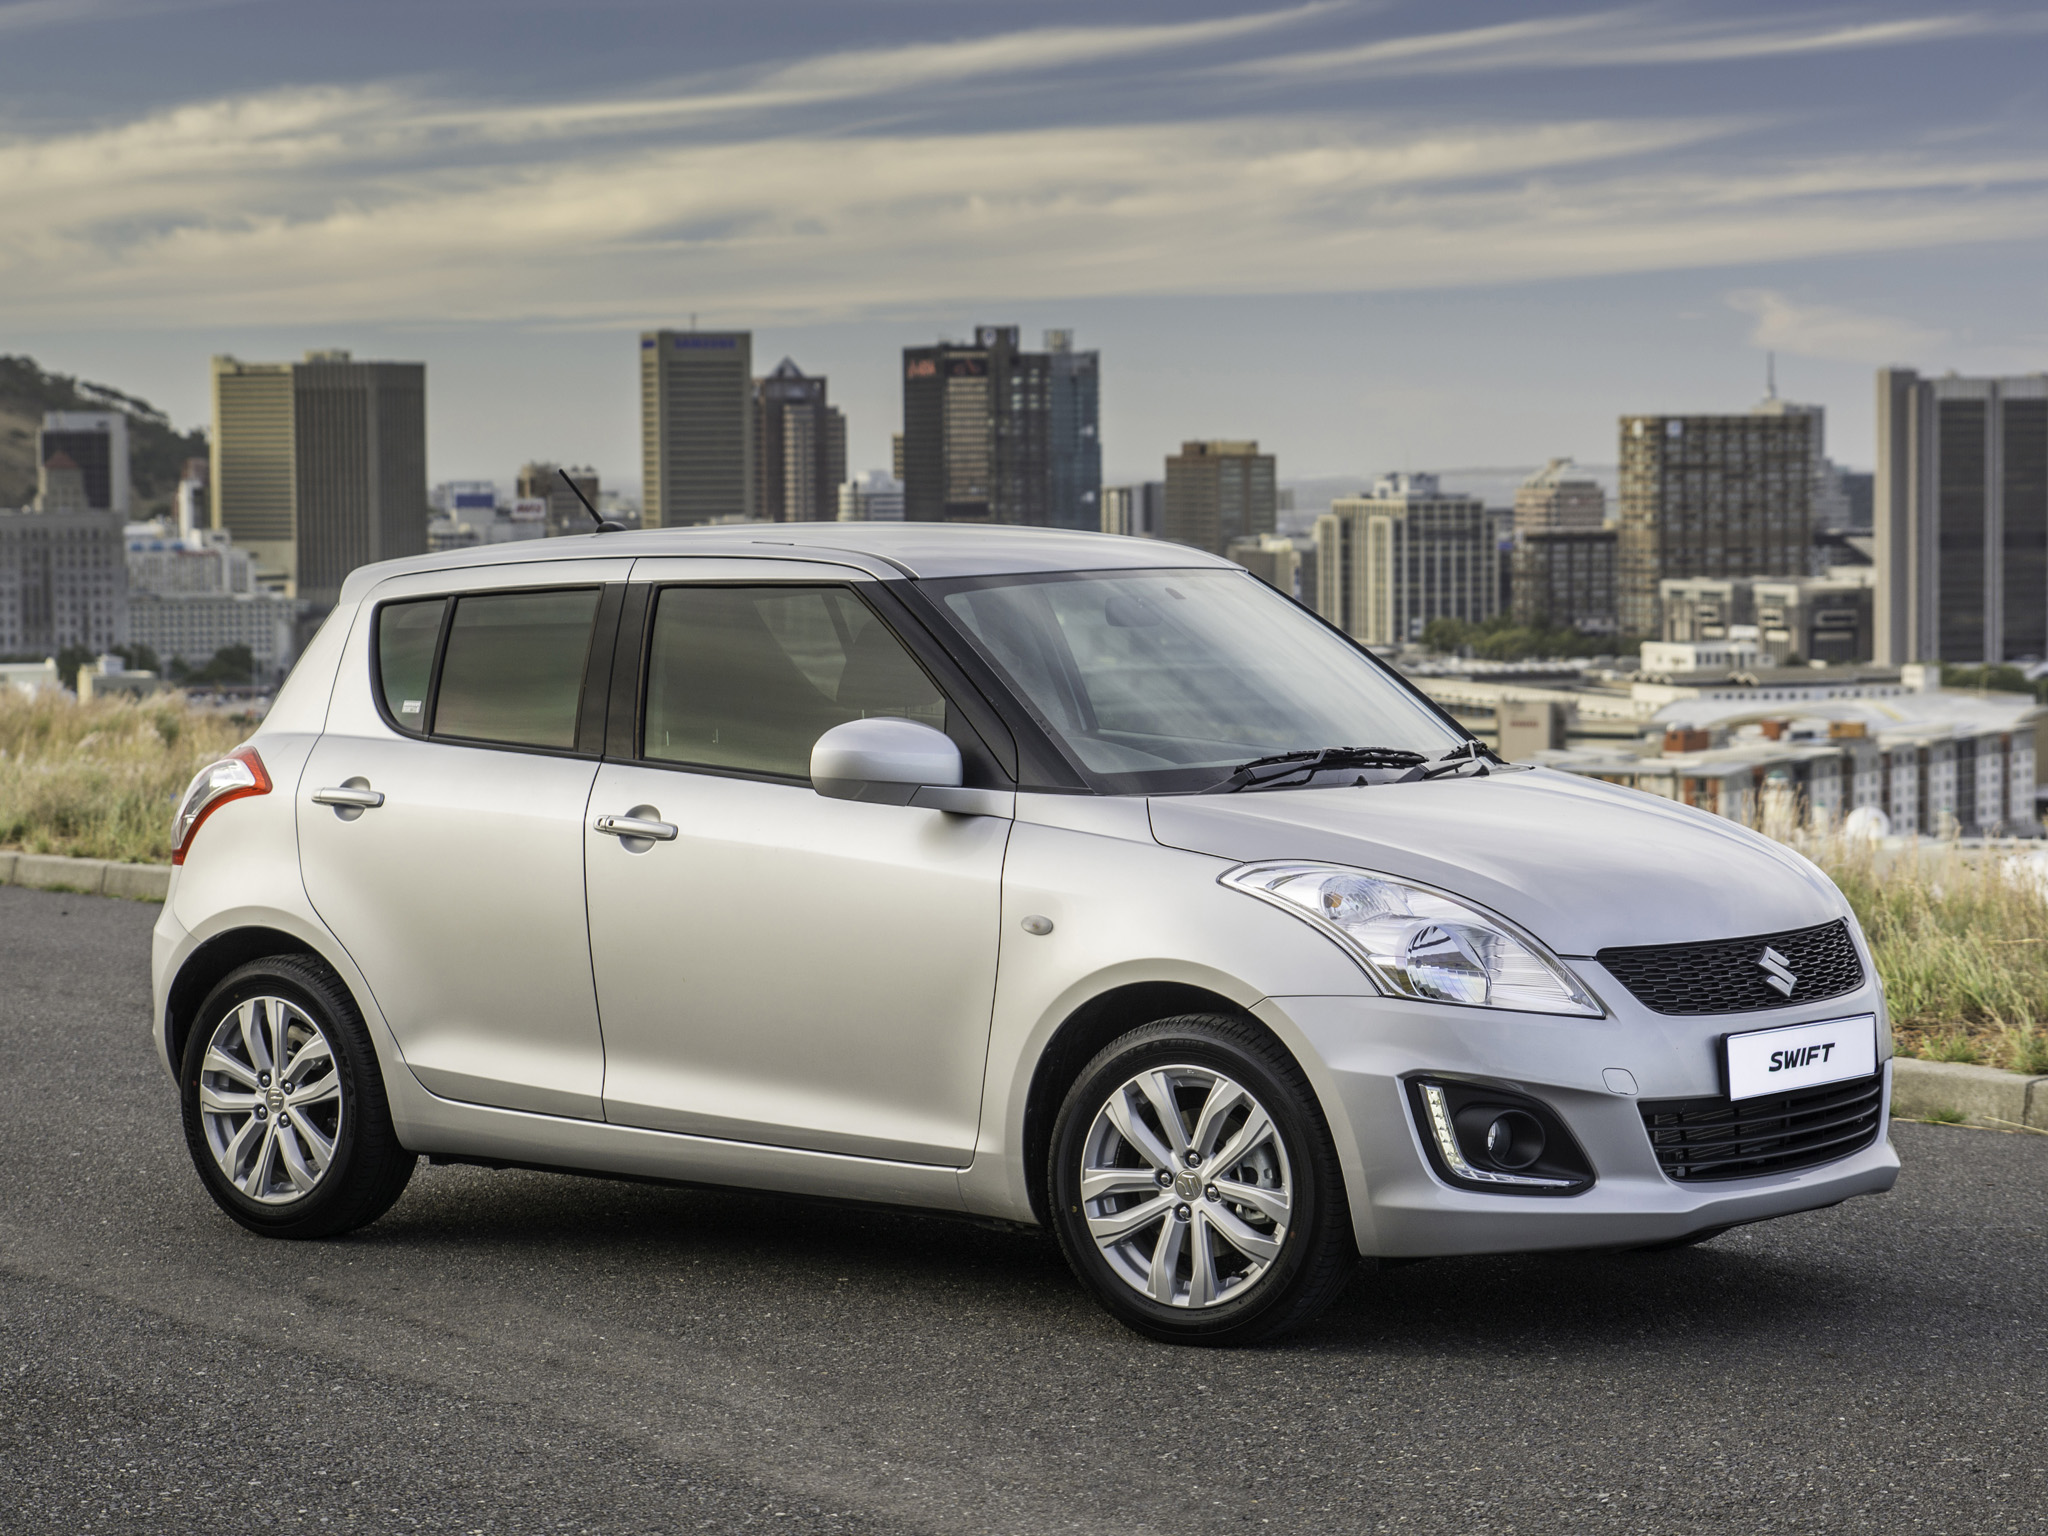 2014 suzuki swift 5door zaspec r wallpaper 2048x1536